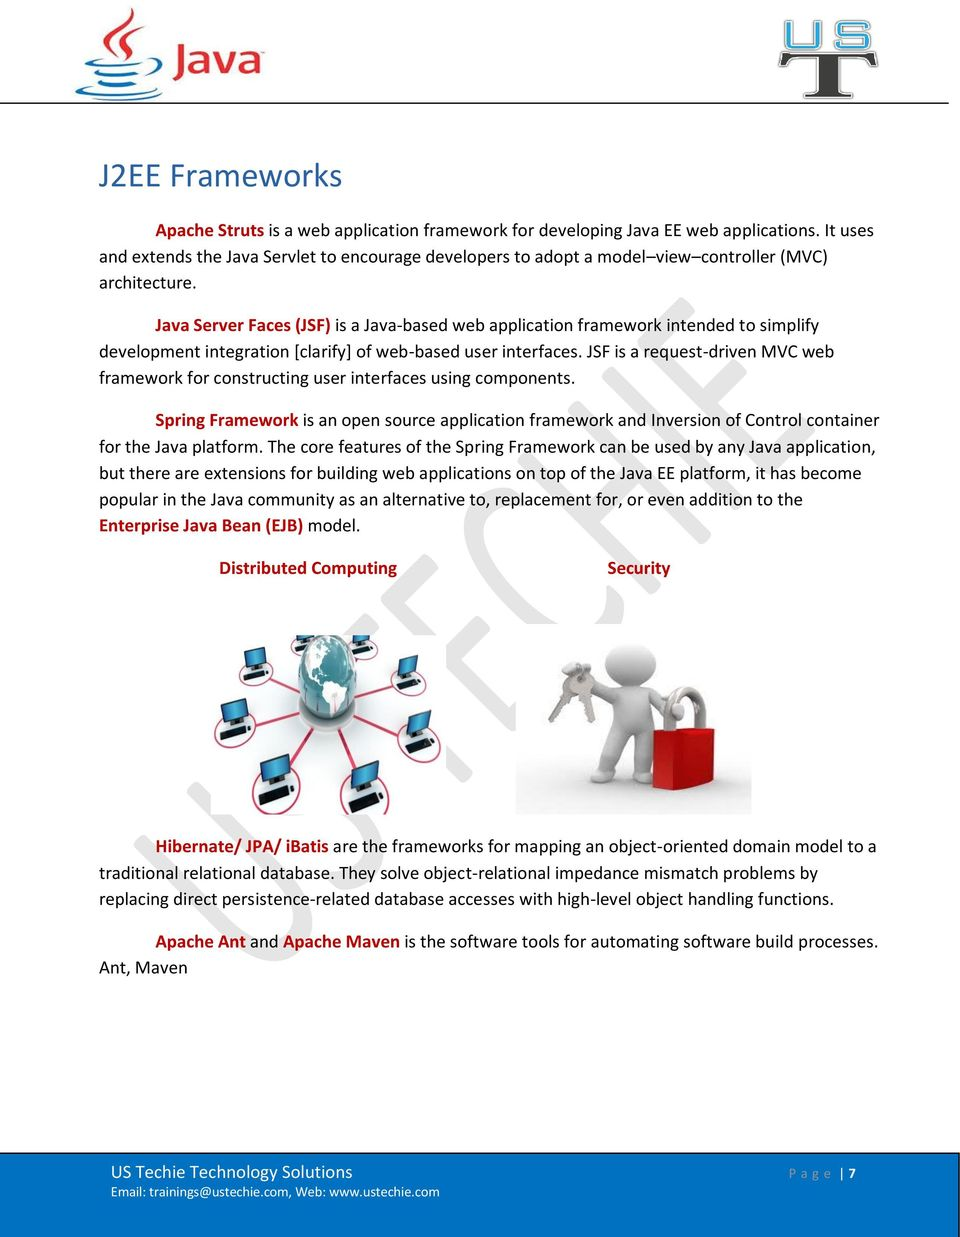 Java Server Faces (JSF) is a Java-based web application framework intended to simplify development integration [clarify] of web-based user interfaces.